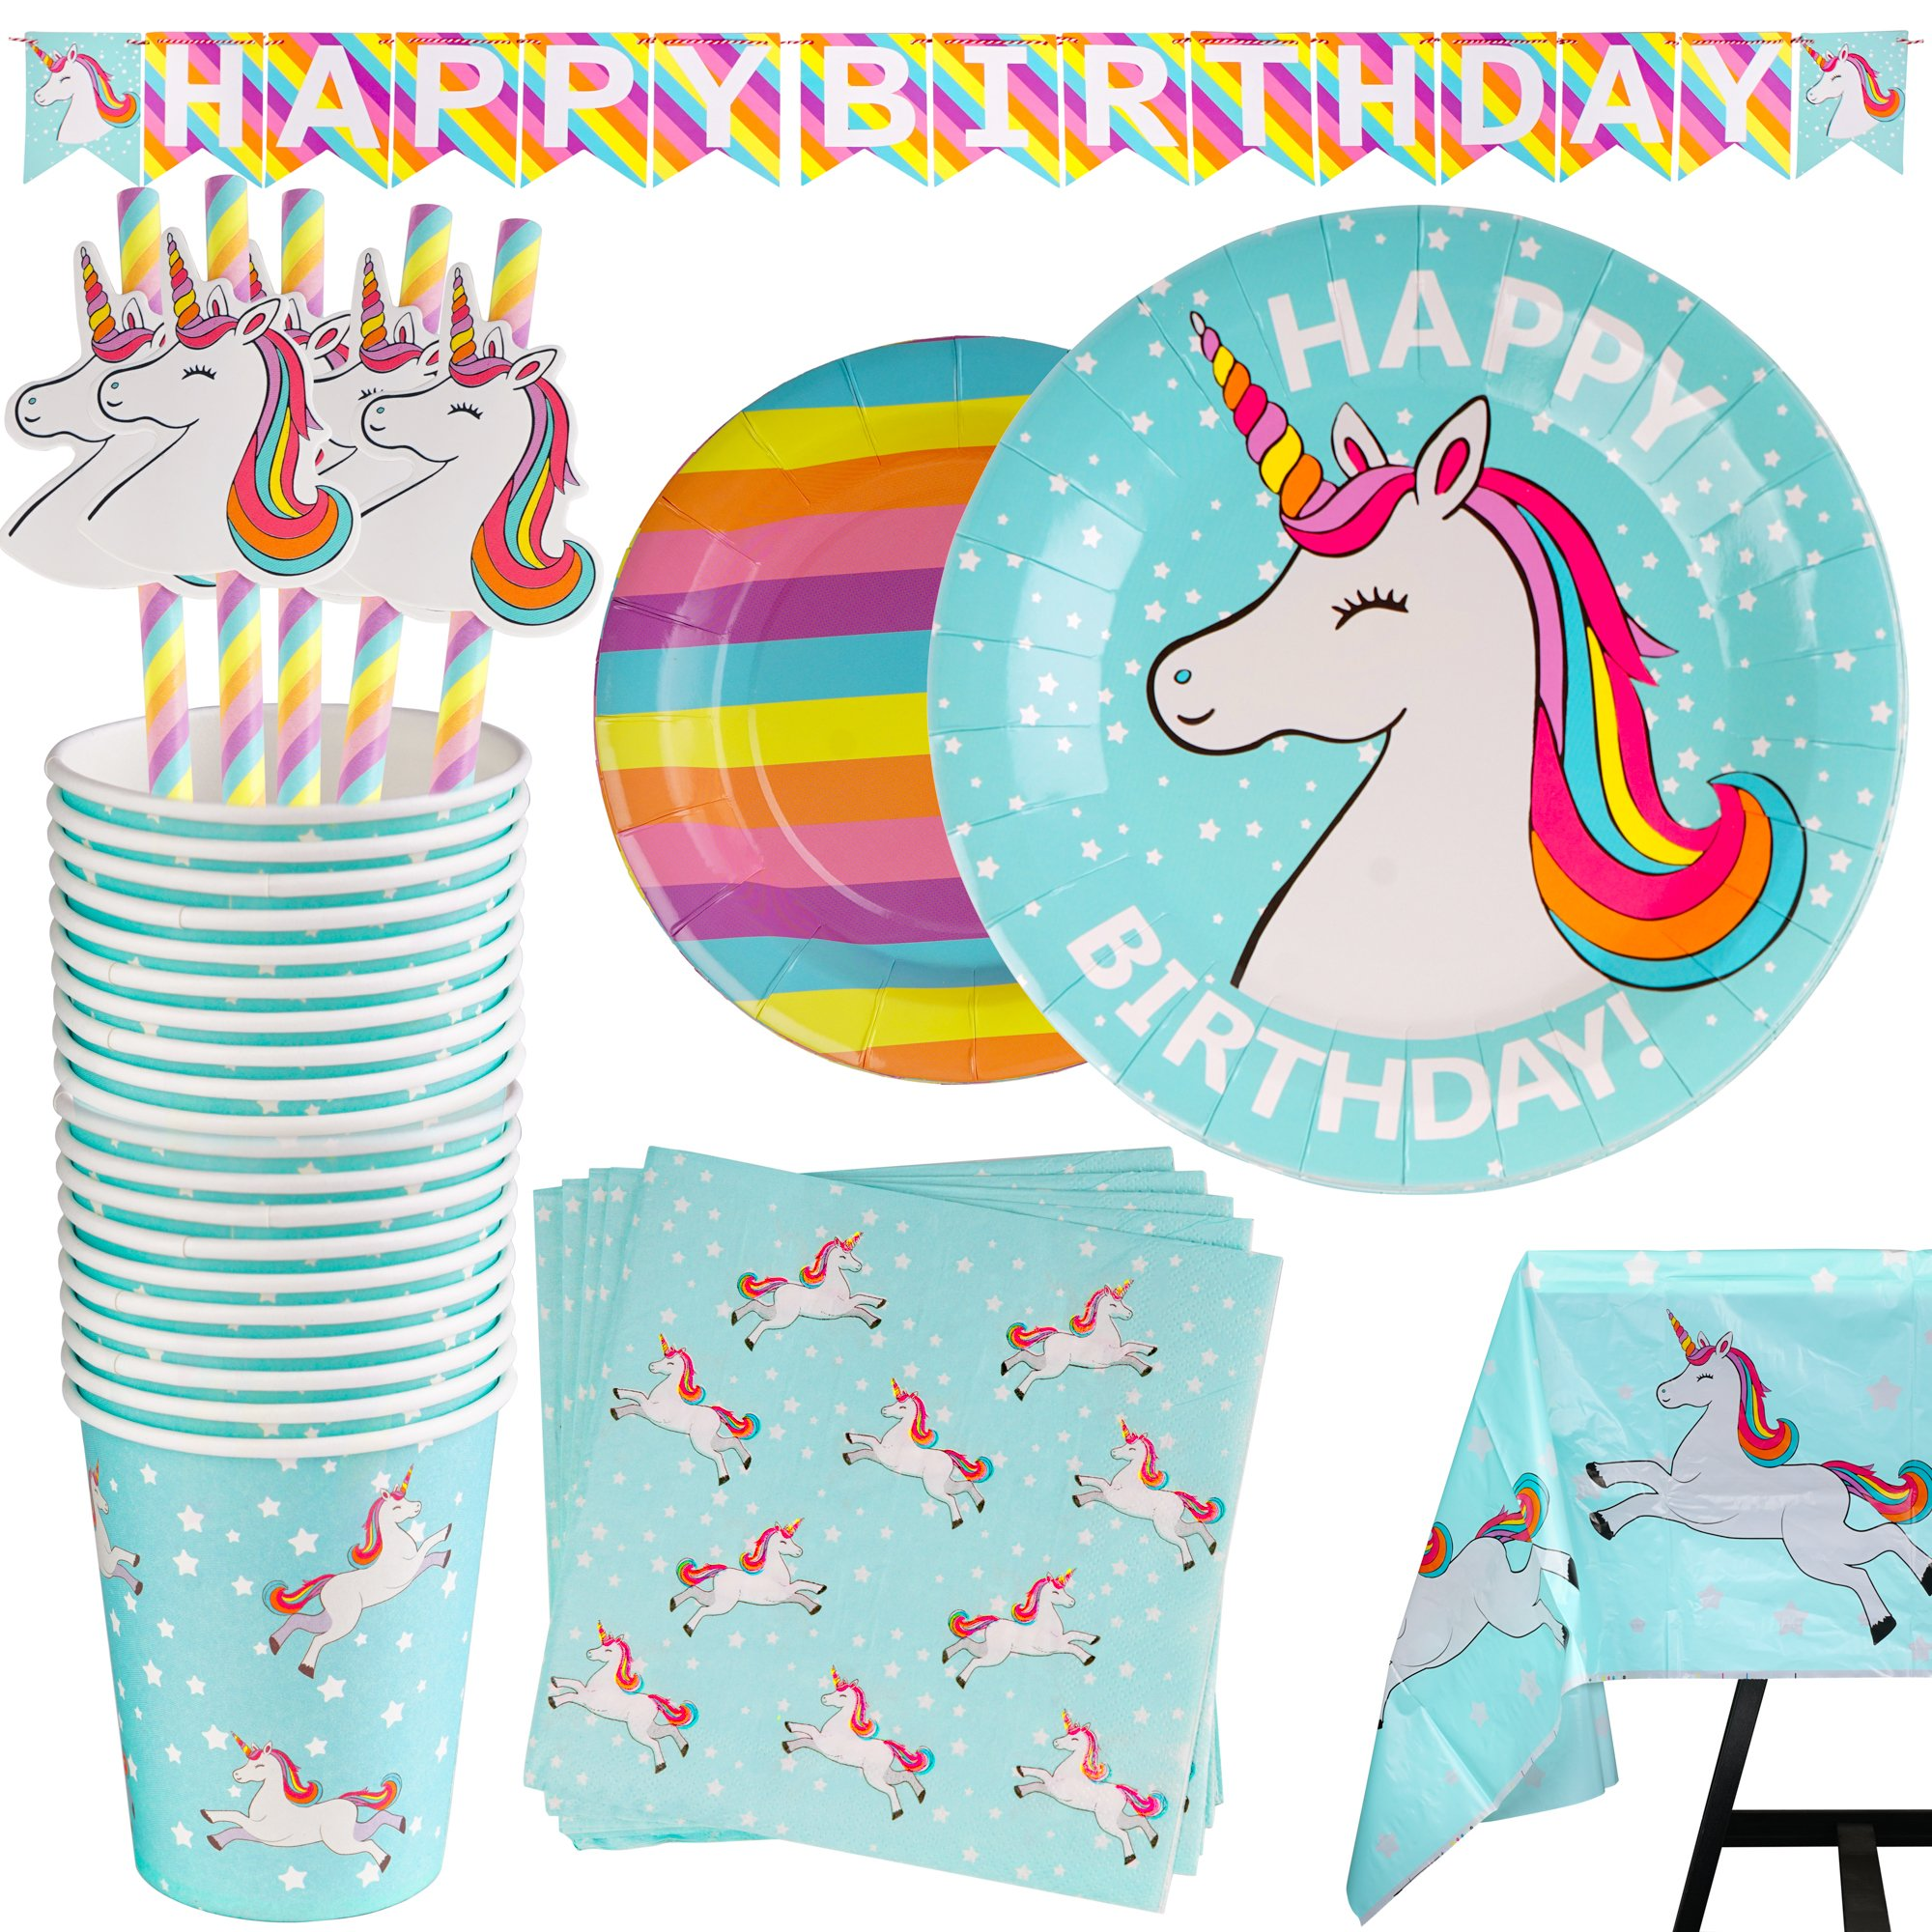 102 Piece Rainbow Unicorn Party Supplies Set Including Banner, Plates, Cups, Napkins, Straws, and Tablecloth, Serves 20 by Scale Rank